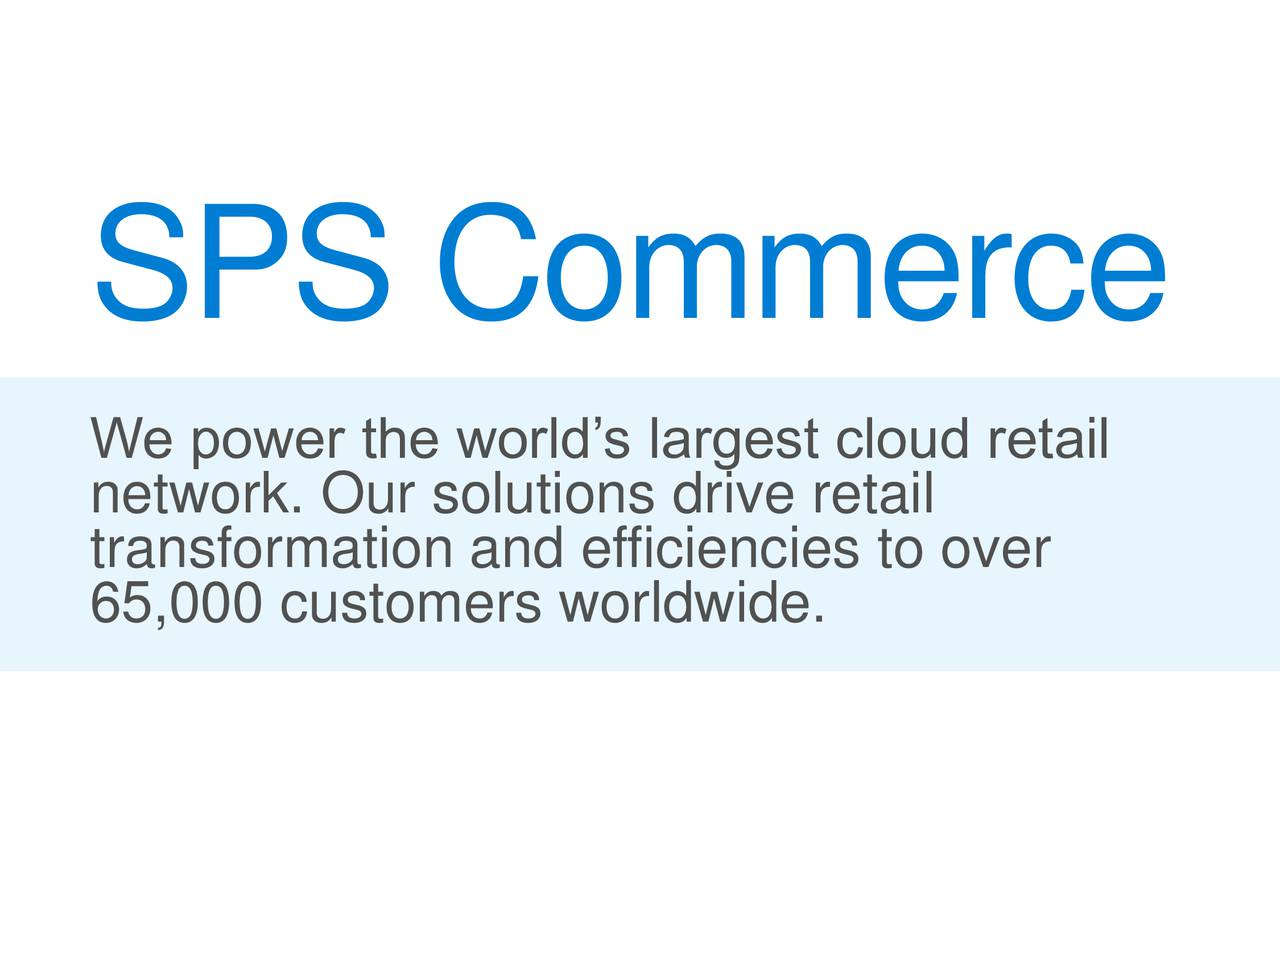 network. Our solutions drive retailretail transformation and efficiencies to over 65,000 customers worldwide.